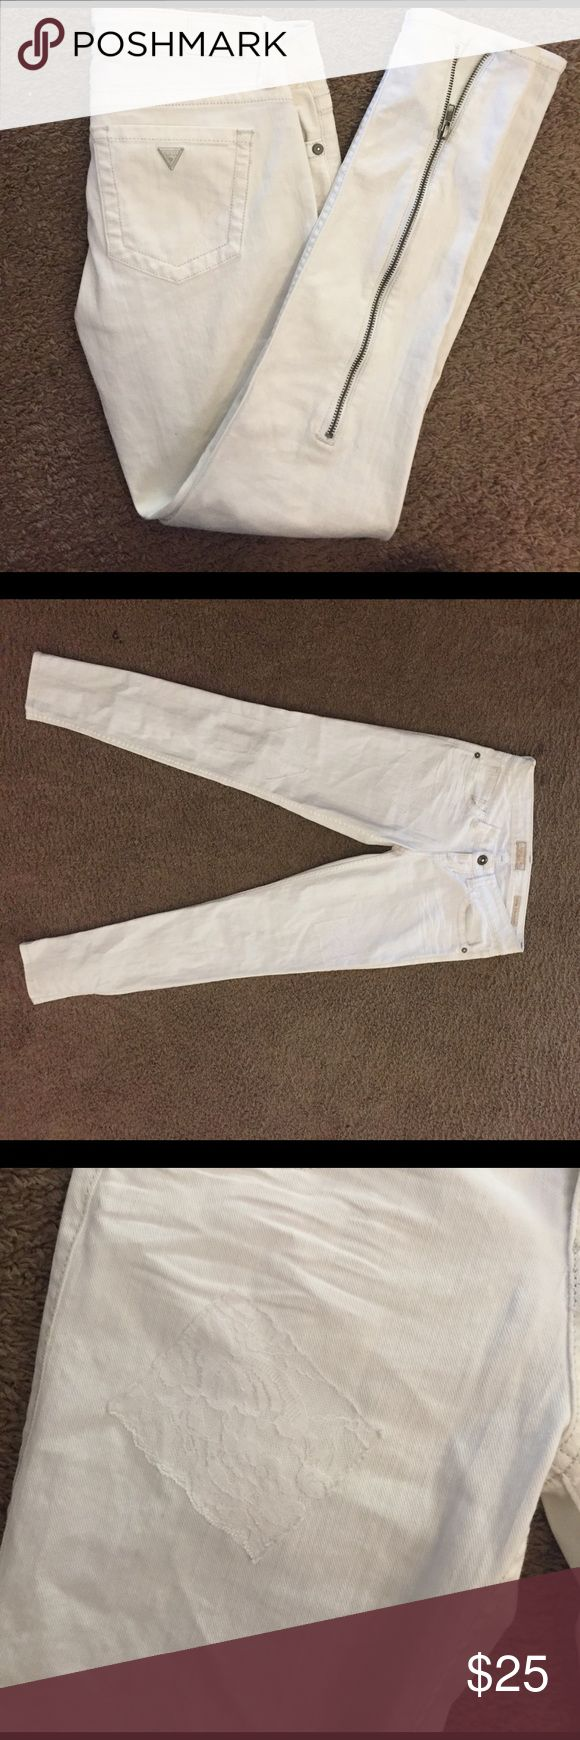 ***SOLD***Guess power ultra skinny white jeans. Euc. Only worn once! Lace patches and zip ankles. Size 26 Guess Jeans Skinny